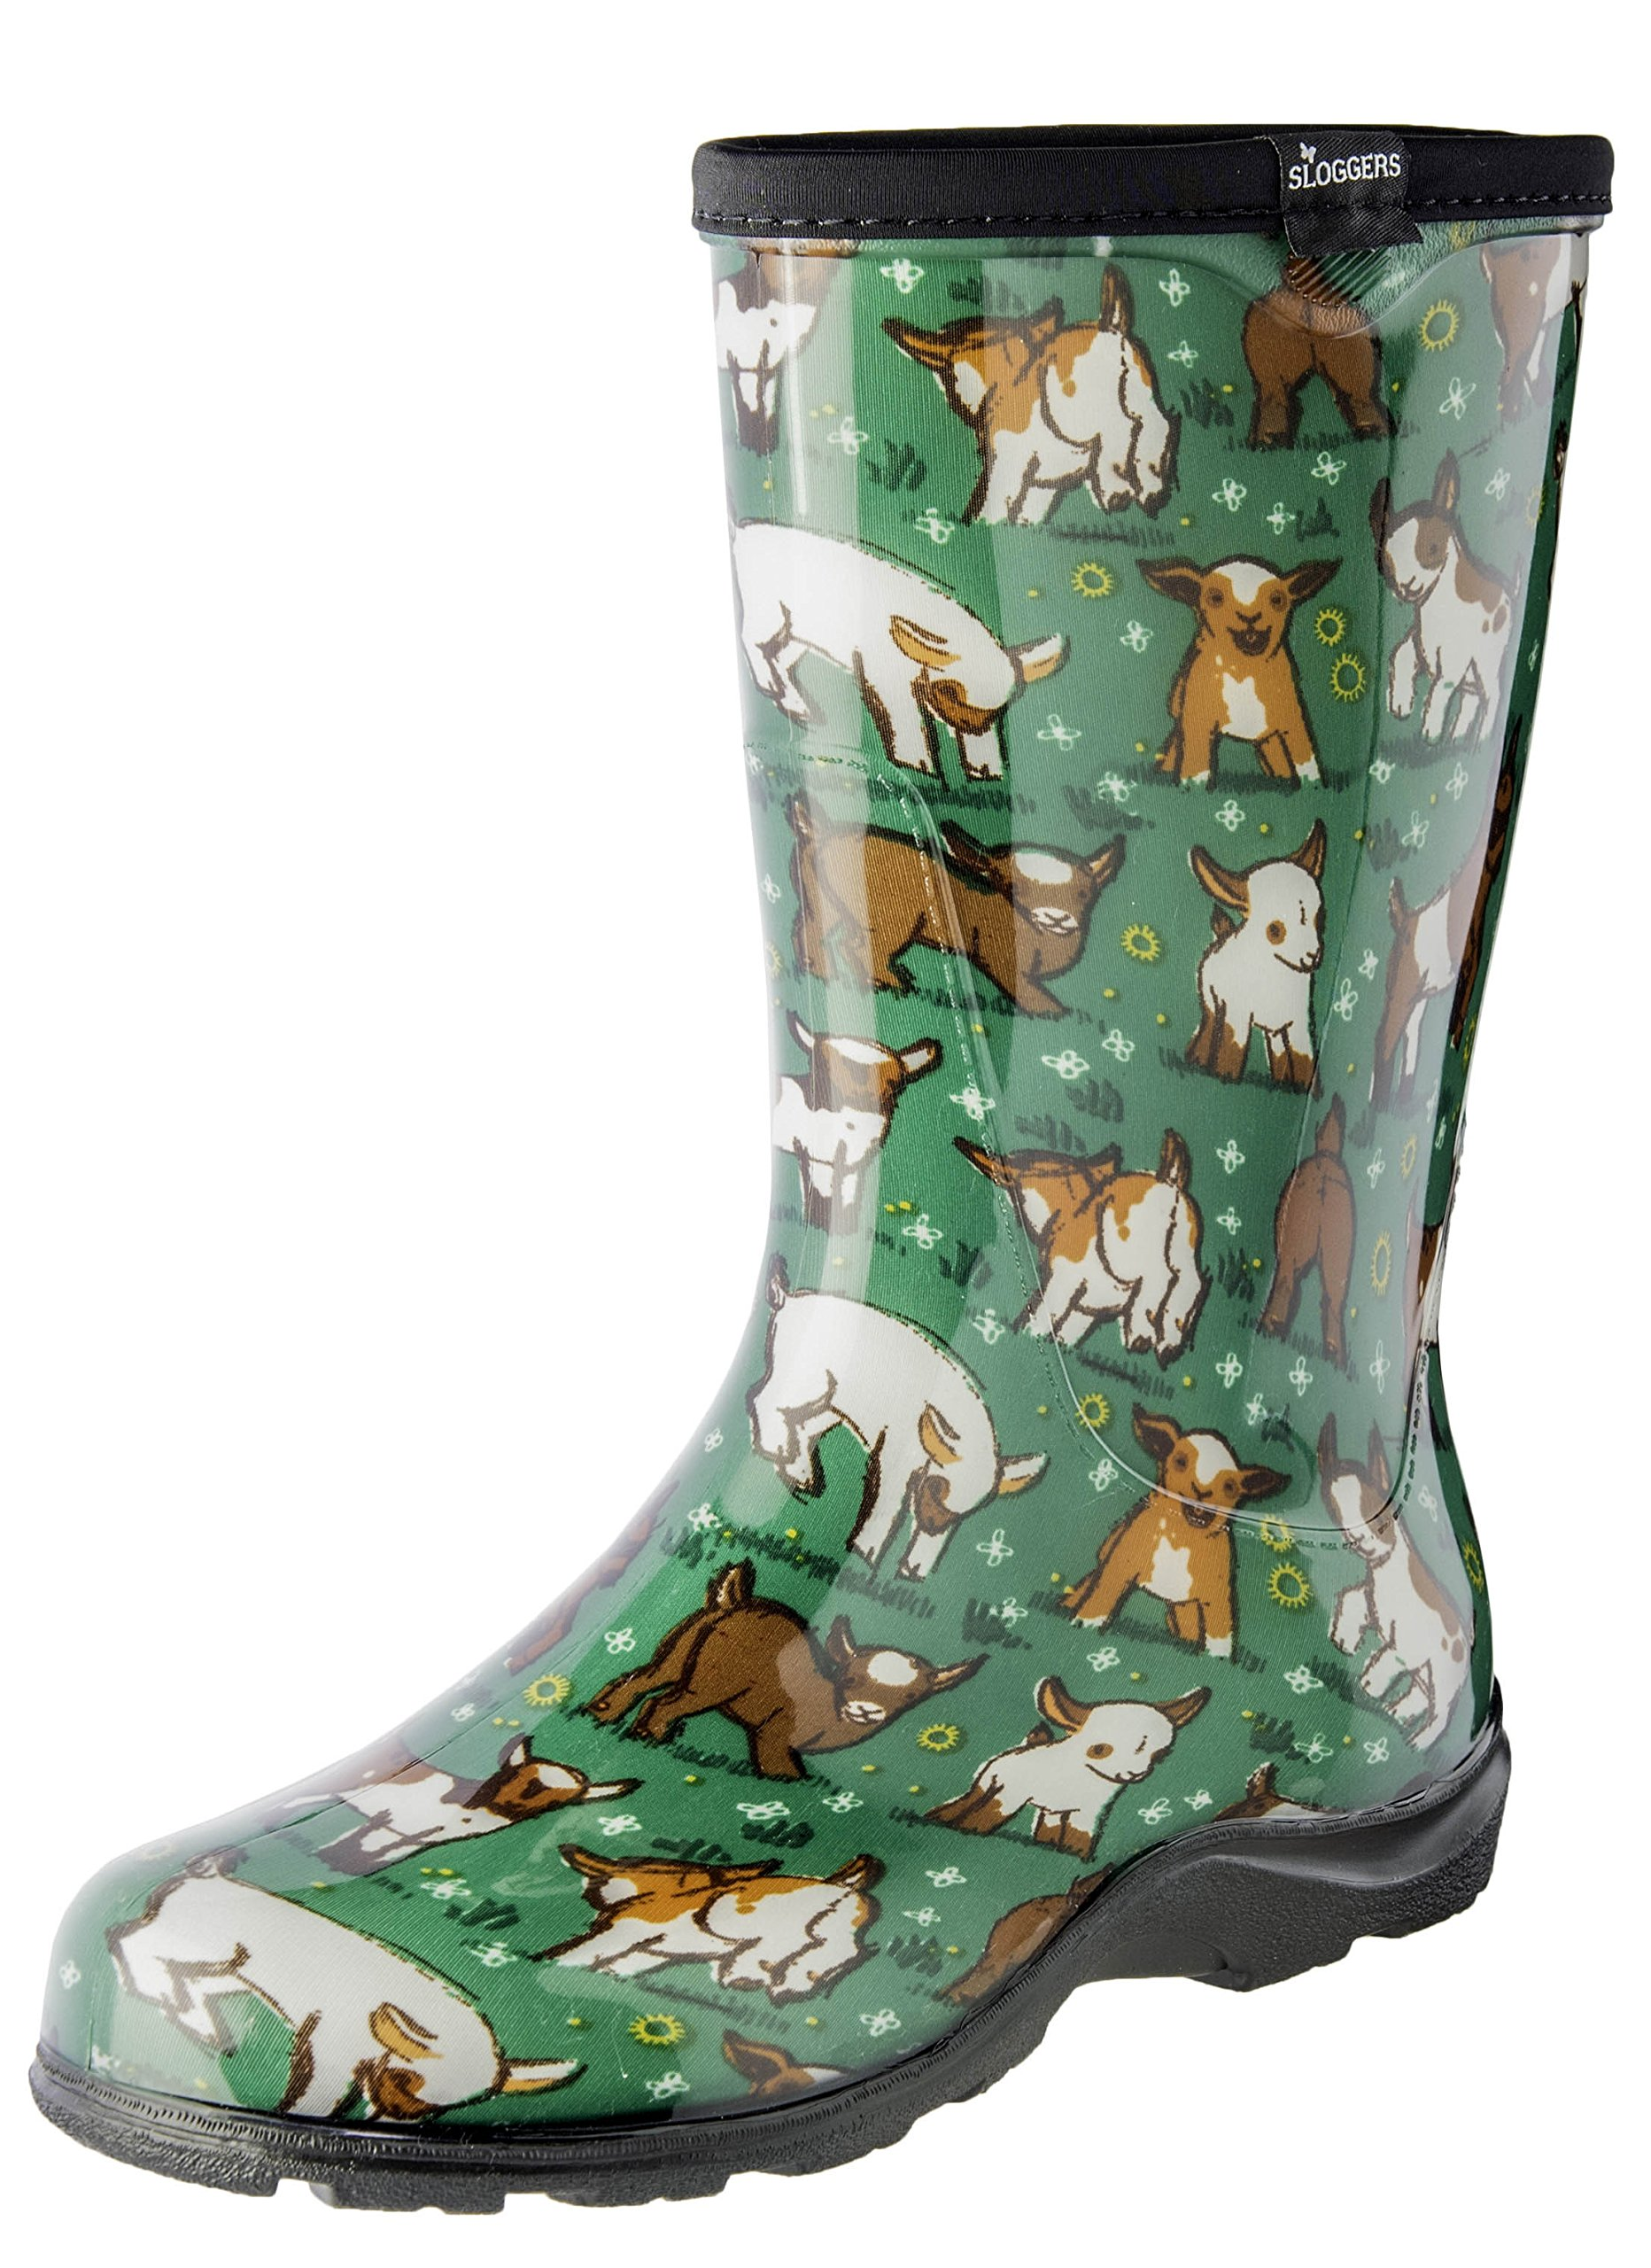 Sloggers Women's Waterproof Rain and Garden Boot with Comfort Insole, Goats Grass Green, Size 8, 5018GOGN08